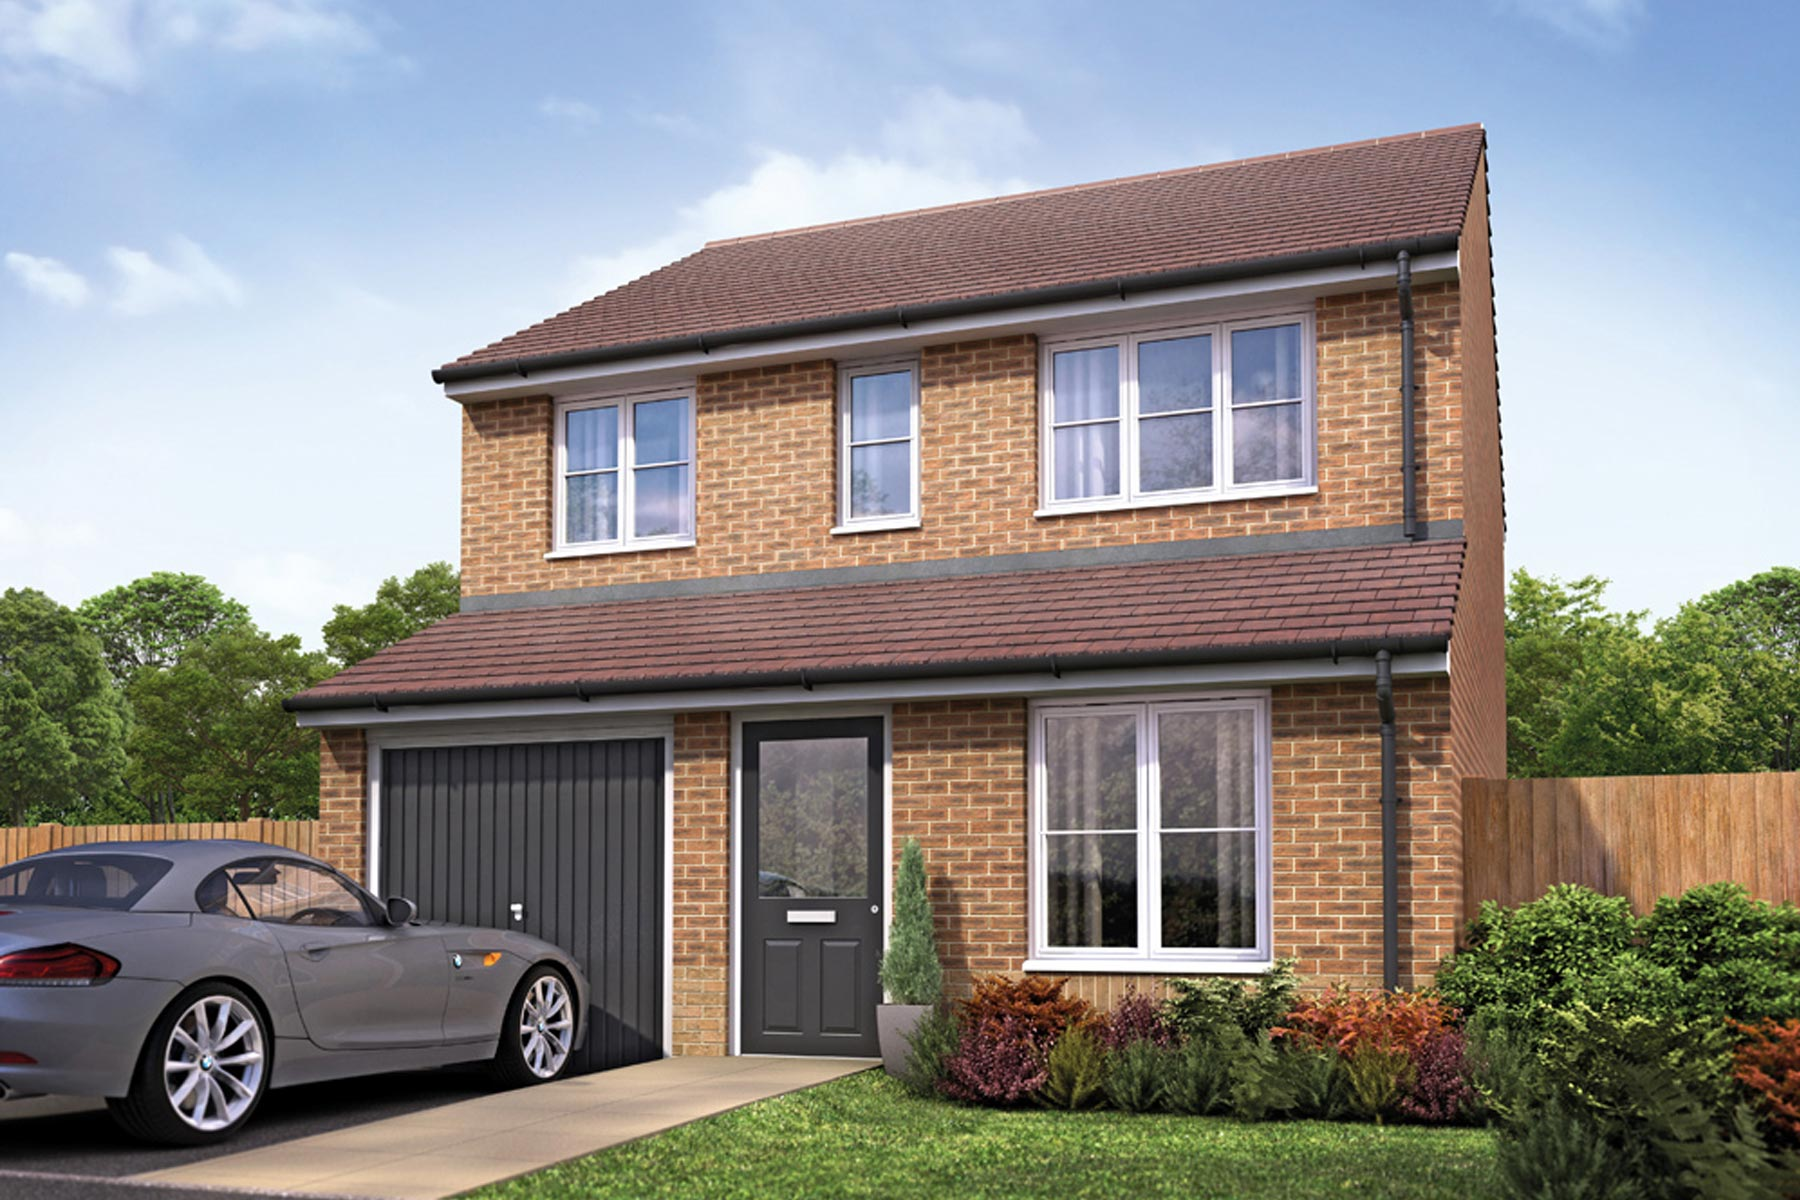 Taylor-WImpey-Exterior-Aldenham-PD32-3-bed